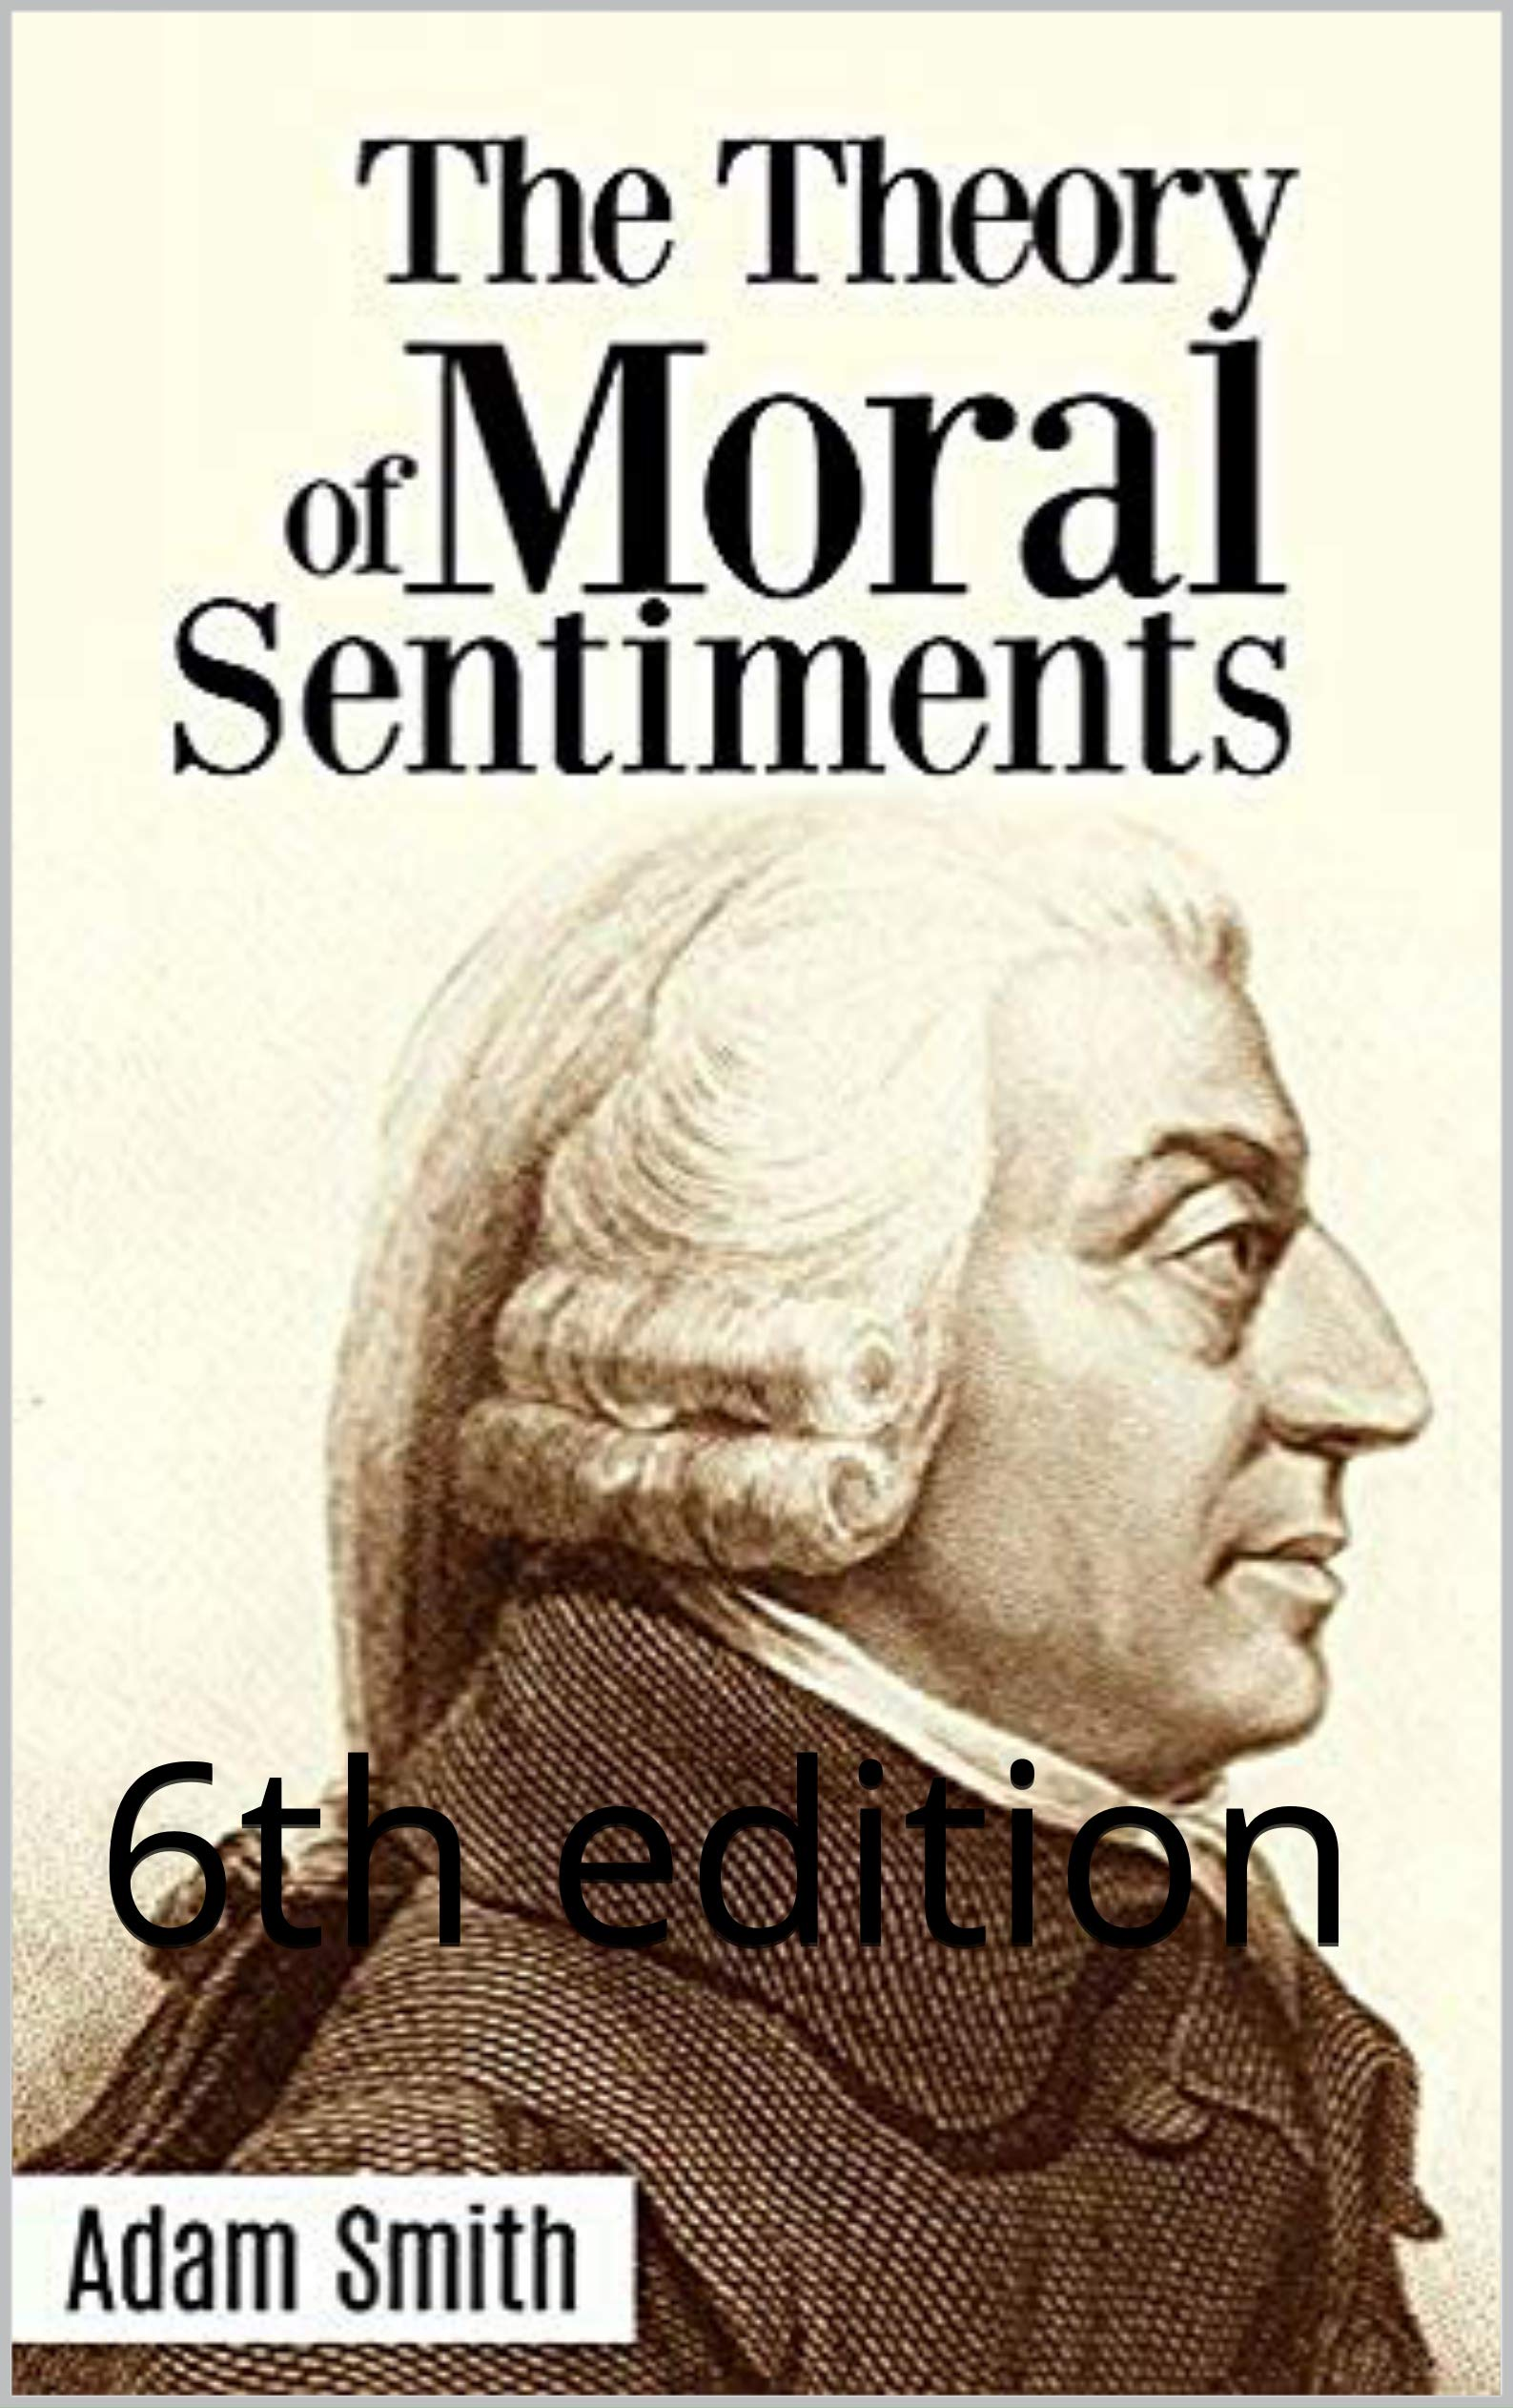 The Theory of Moral Sentiment : 6th edition